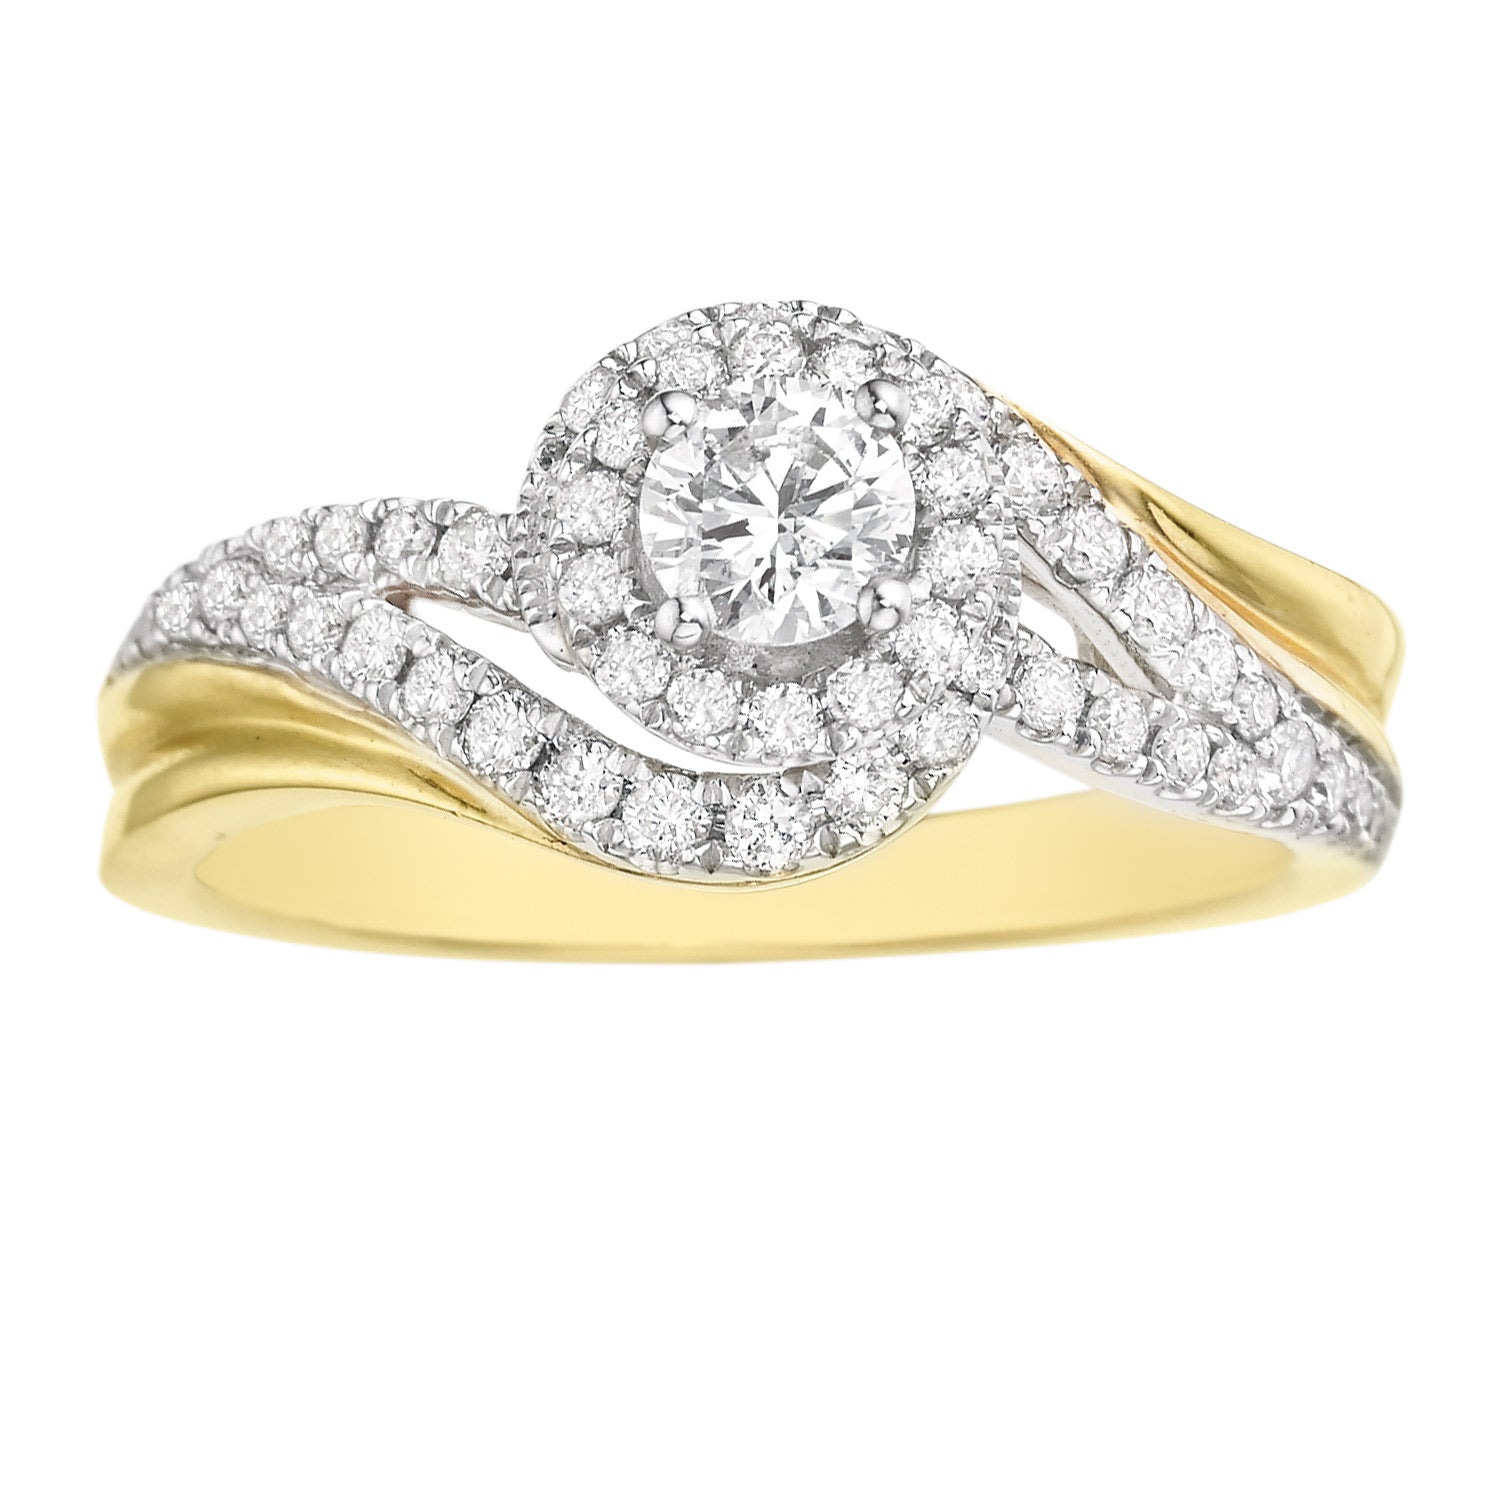 14ct Yellow Gold Round Brilliant Cut with 3/4 CARAT tw of Diamonds